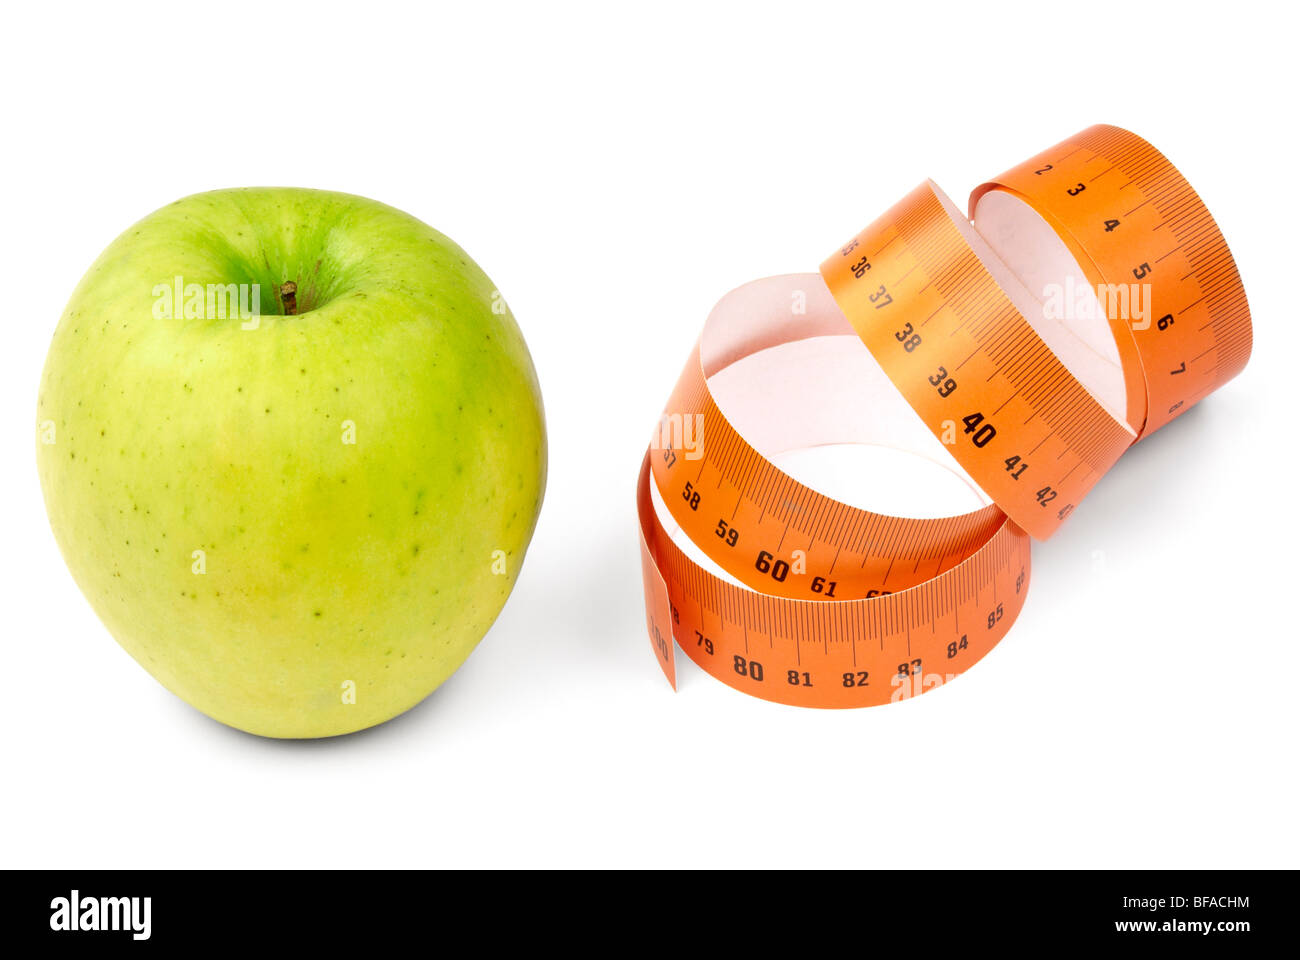 Green apple and orange measurement tape. Diet concept. - Stock Image